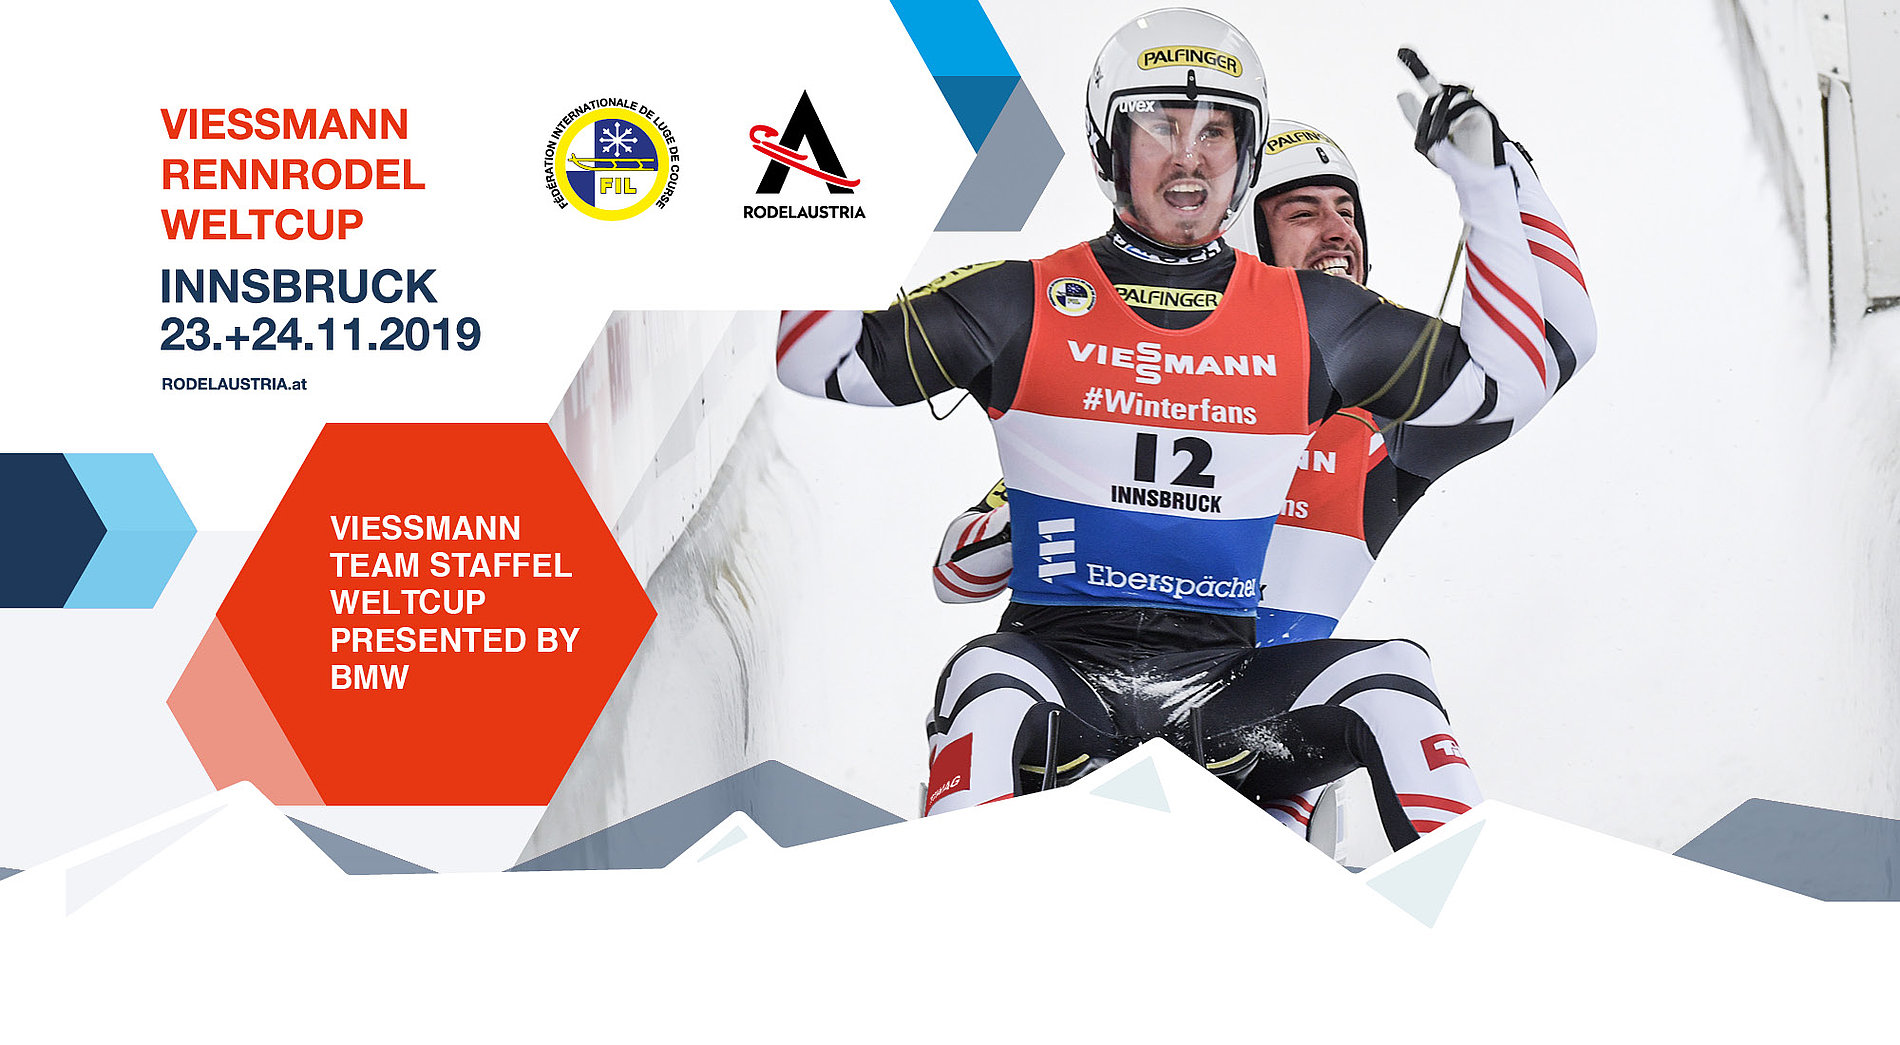 VIESSMANN Weltcup Igls presented by BMW